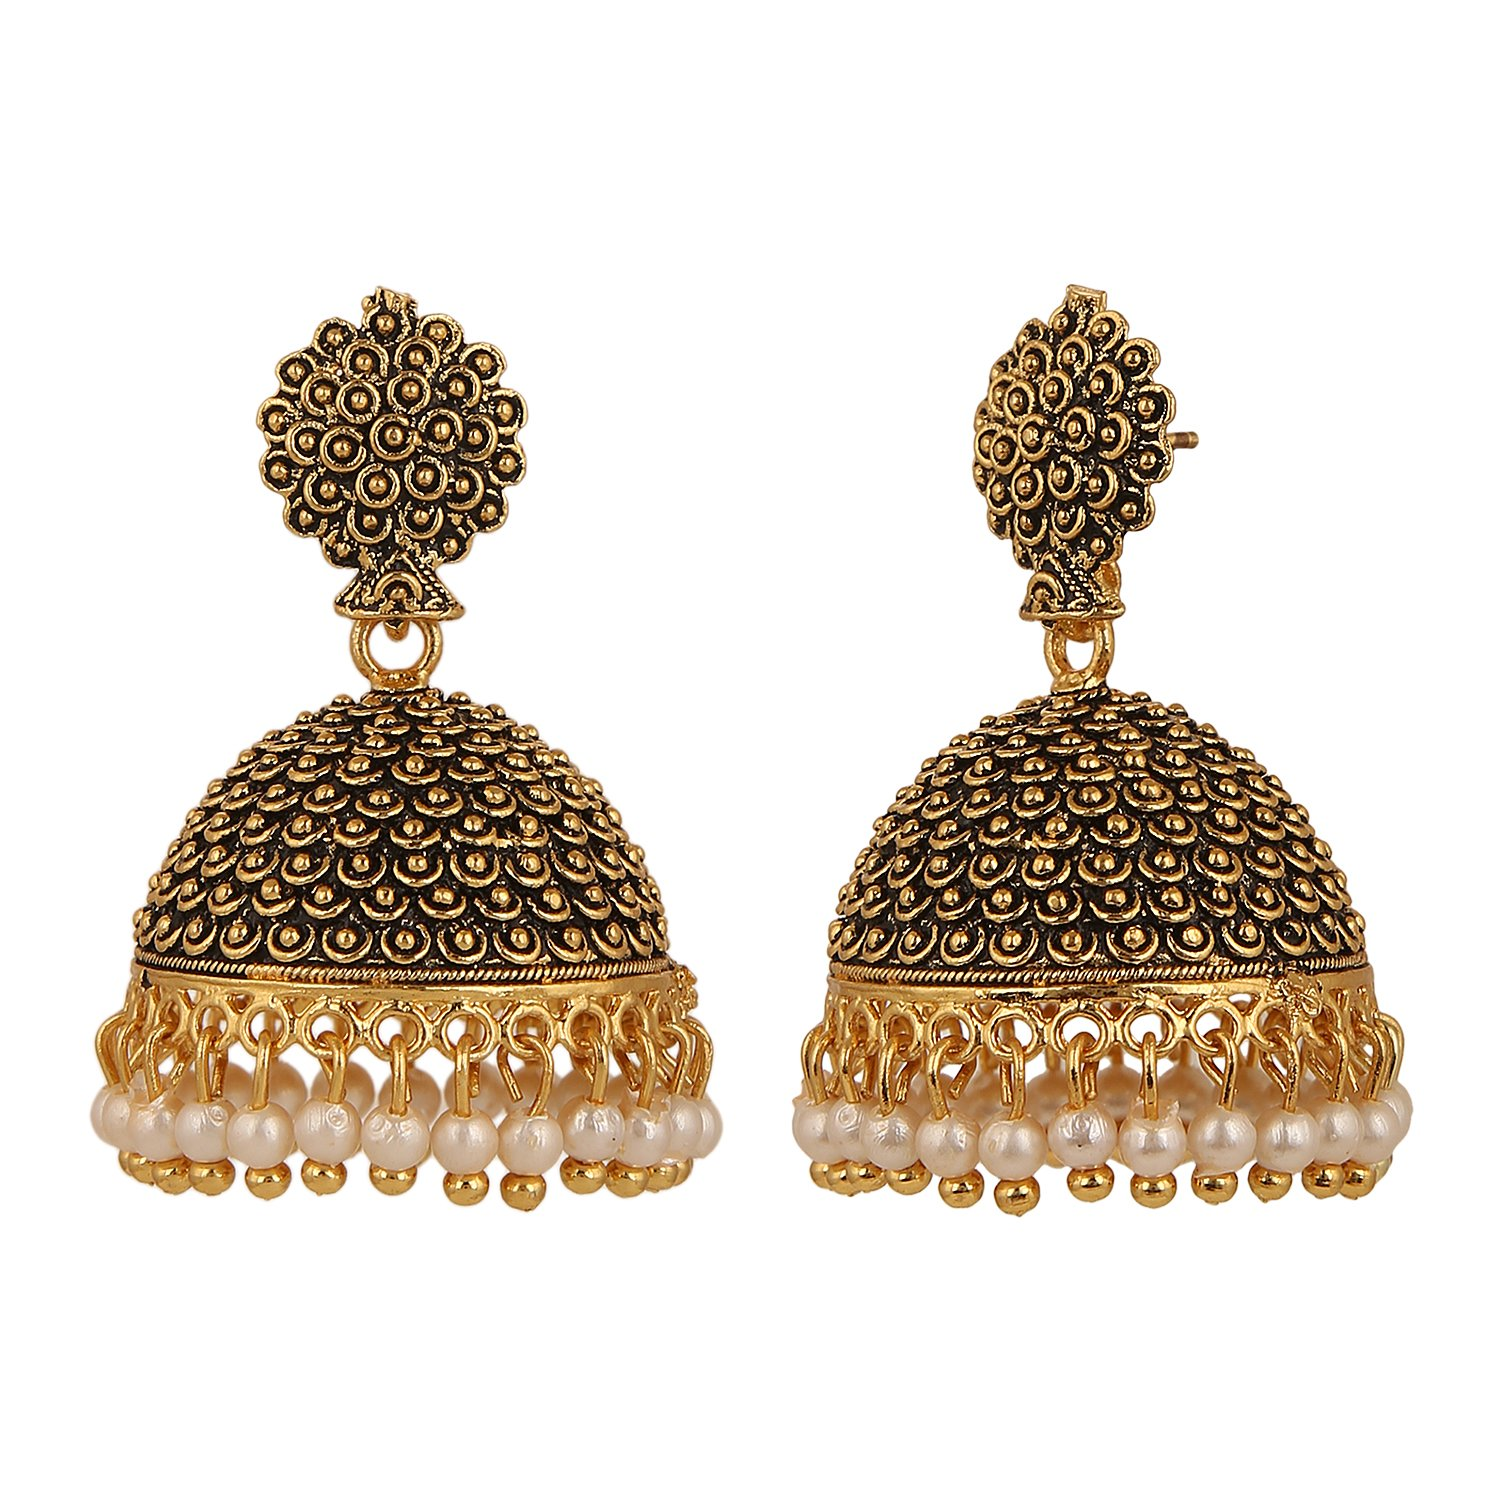 Efulgenz Indian Vintage Bollywood Gypsy Oxidized Gold Plated Traditional Jhumka Jhumki Earrings for Women and Girls (White+Yellow) by Efulgenz (Image #3)